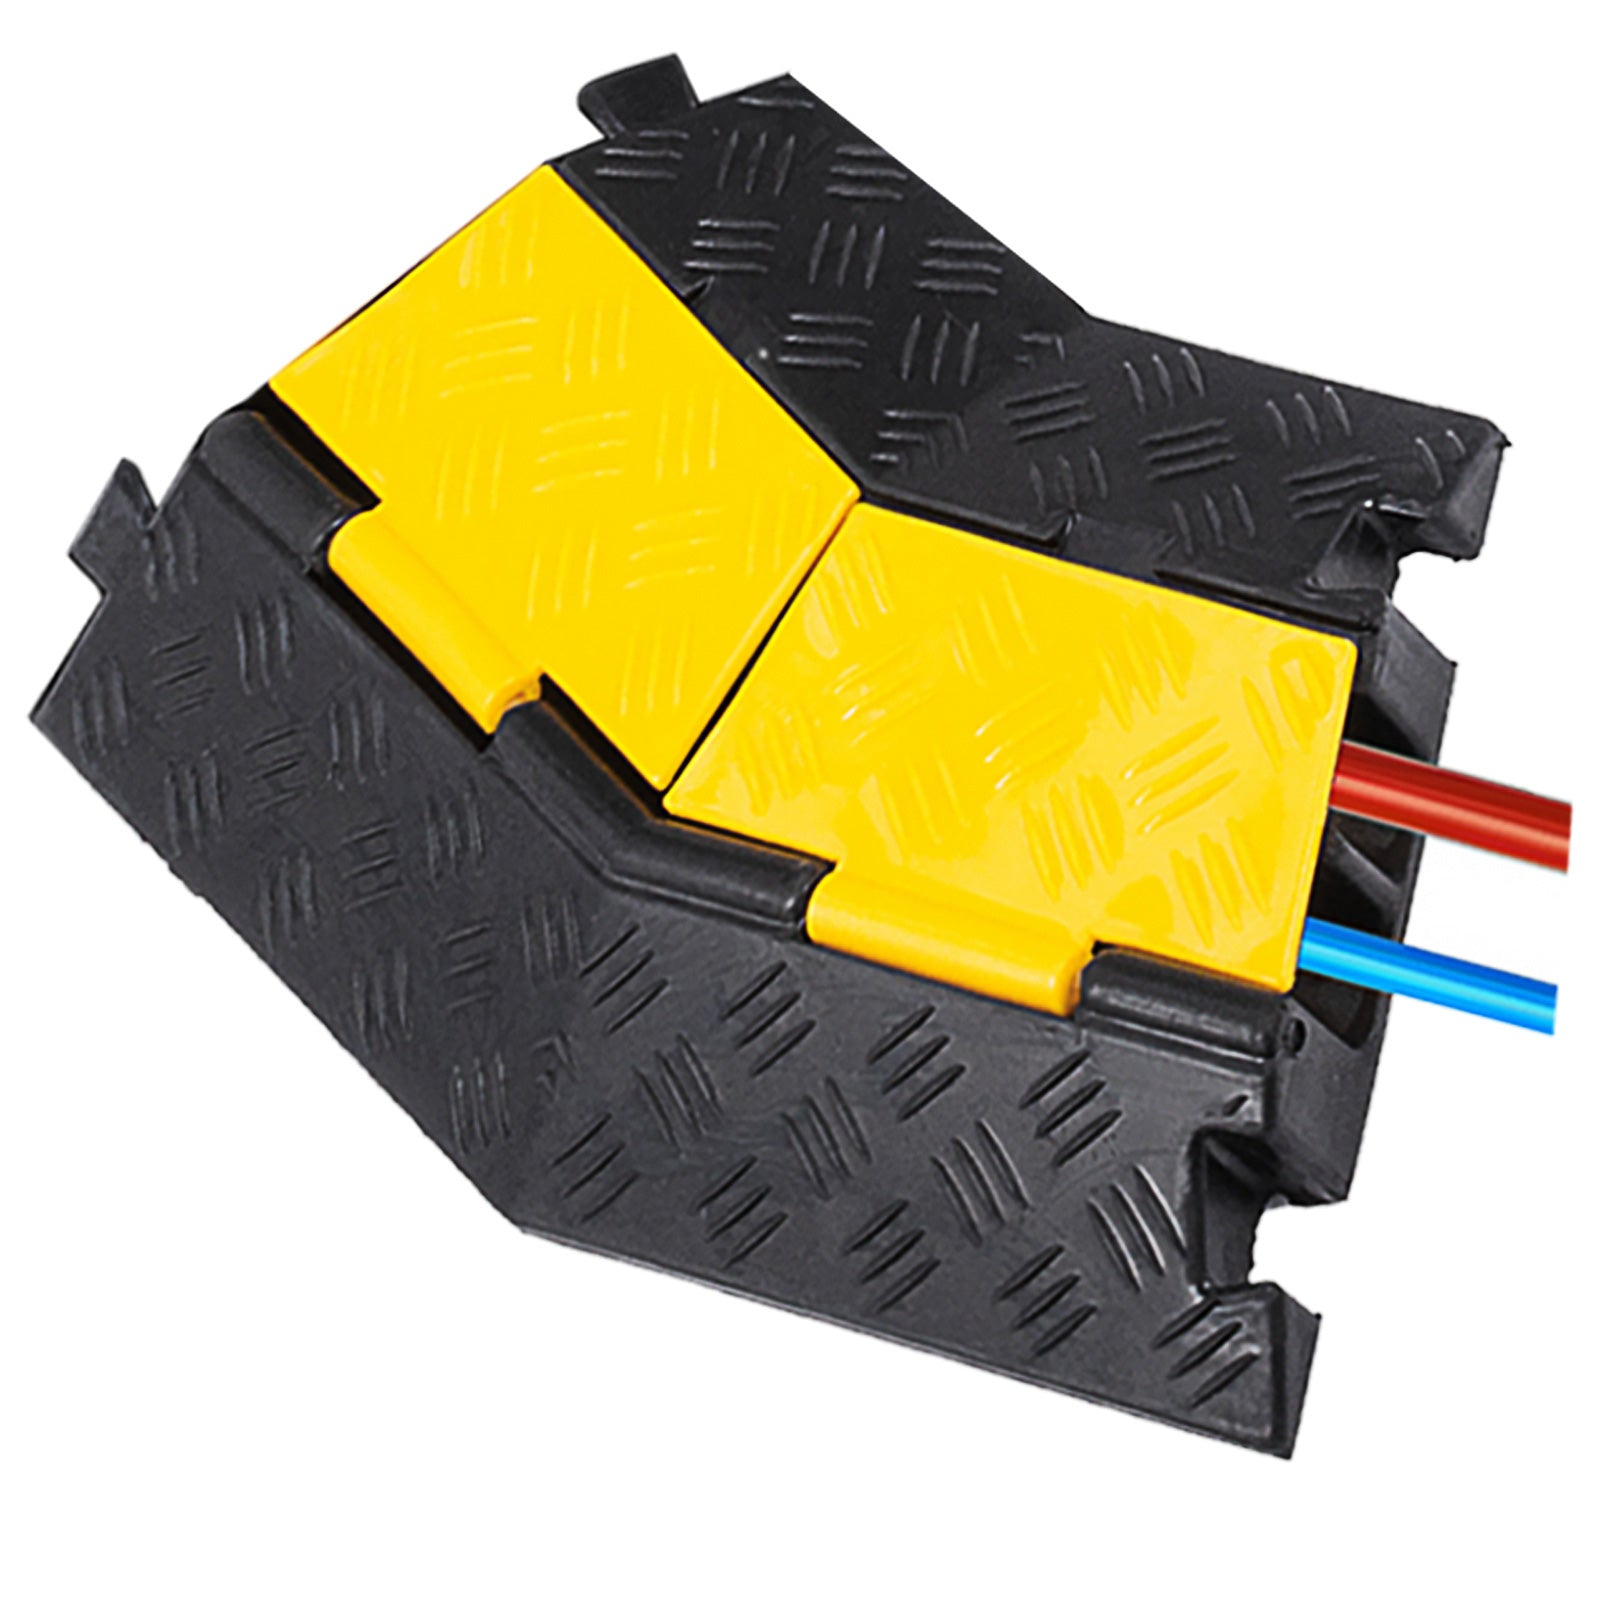 4 Pack Rubber Cable Protector Ramp 45 Right Turn Visible High Traffic Pedestrian